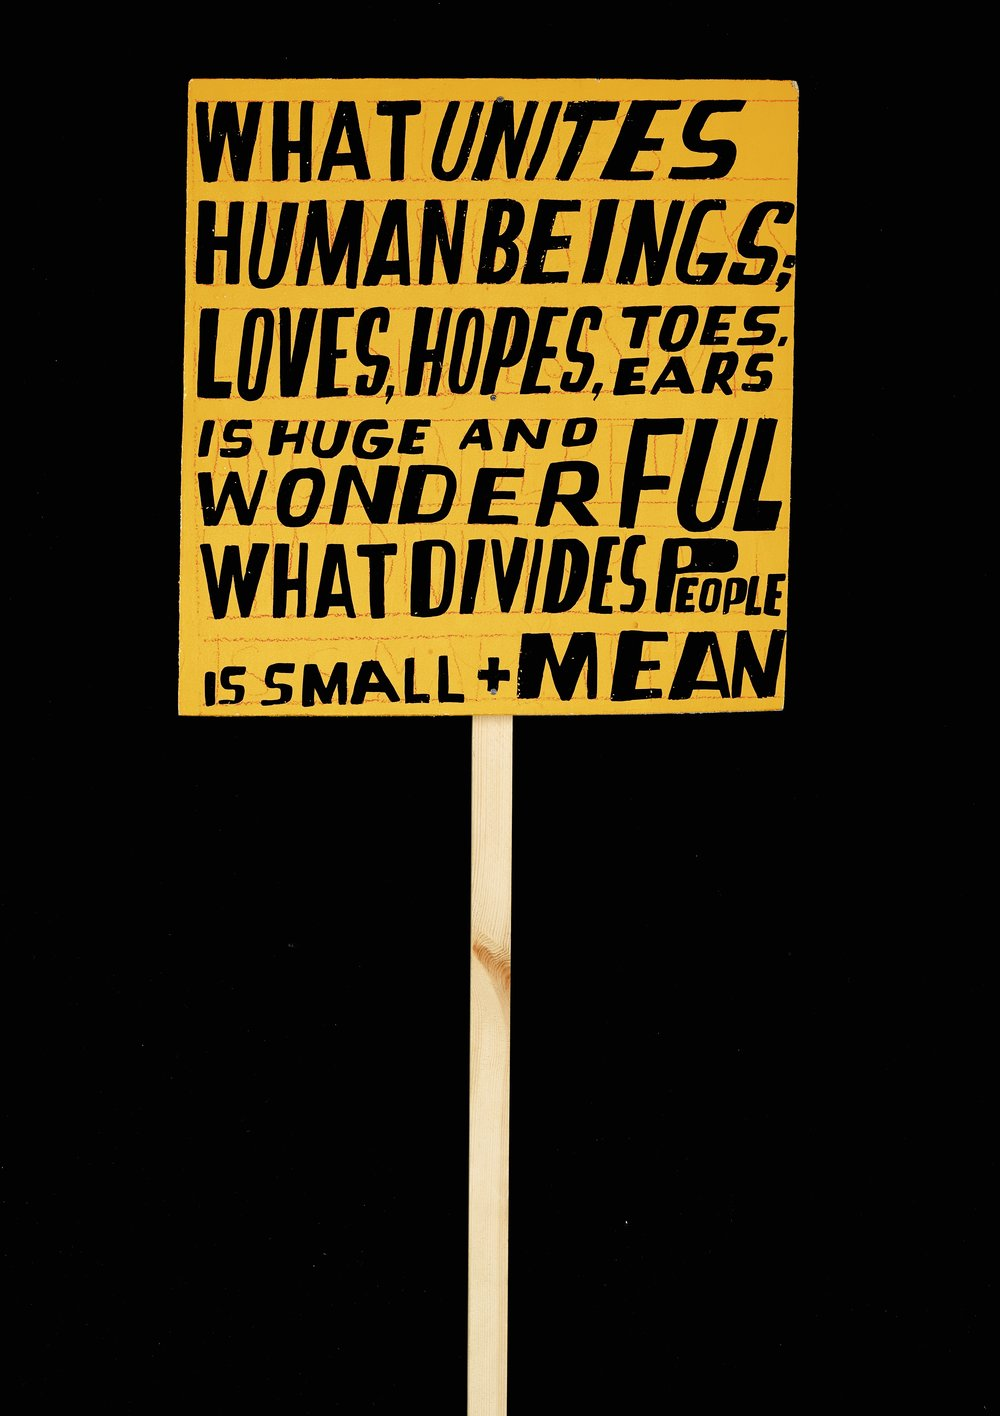 Lot 1: Bob & Roberta Smith - What Unites Human Beings